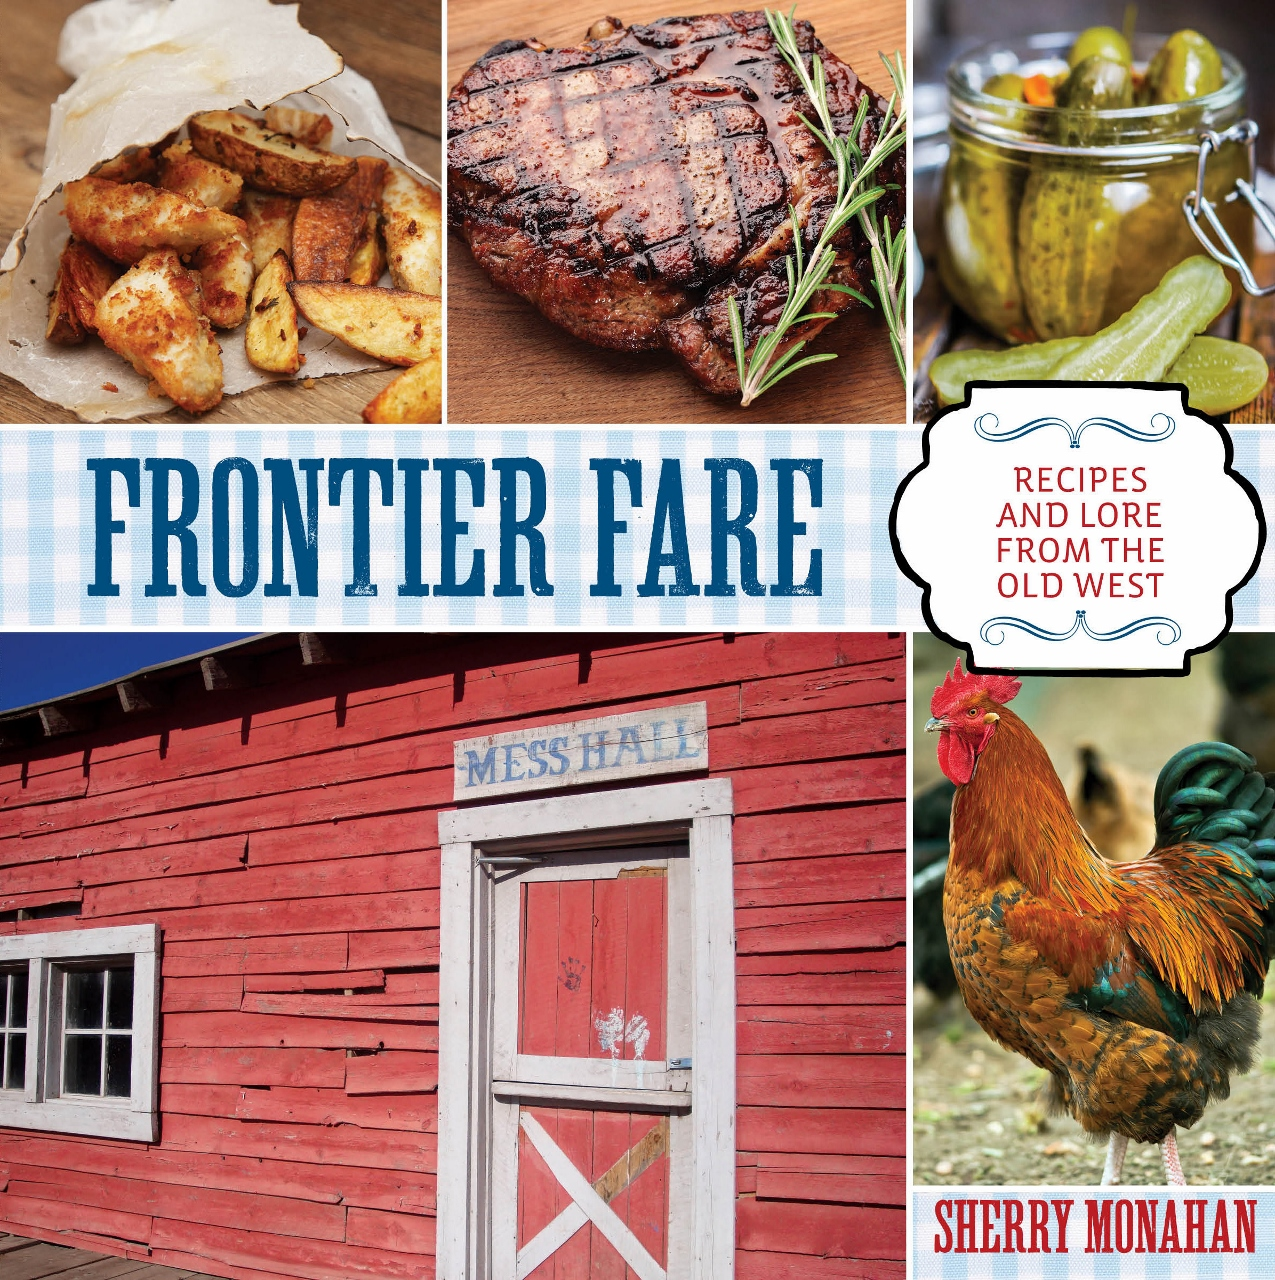 Real food traveler frontier fare more lore than cookbook real frontier fare recipes and lore from the old west by sherry monahan combines history written accounts and recipes into a fun book that will satisfy old forumfinder Choice Image